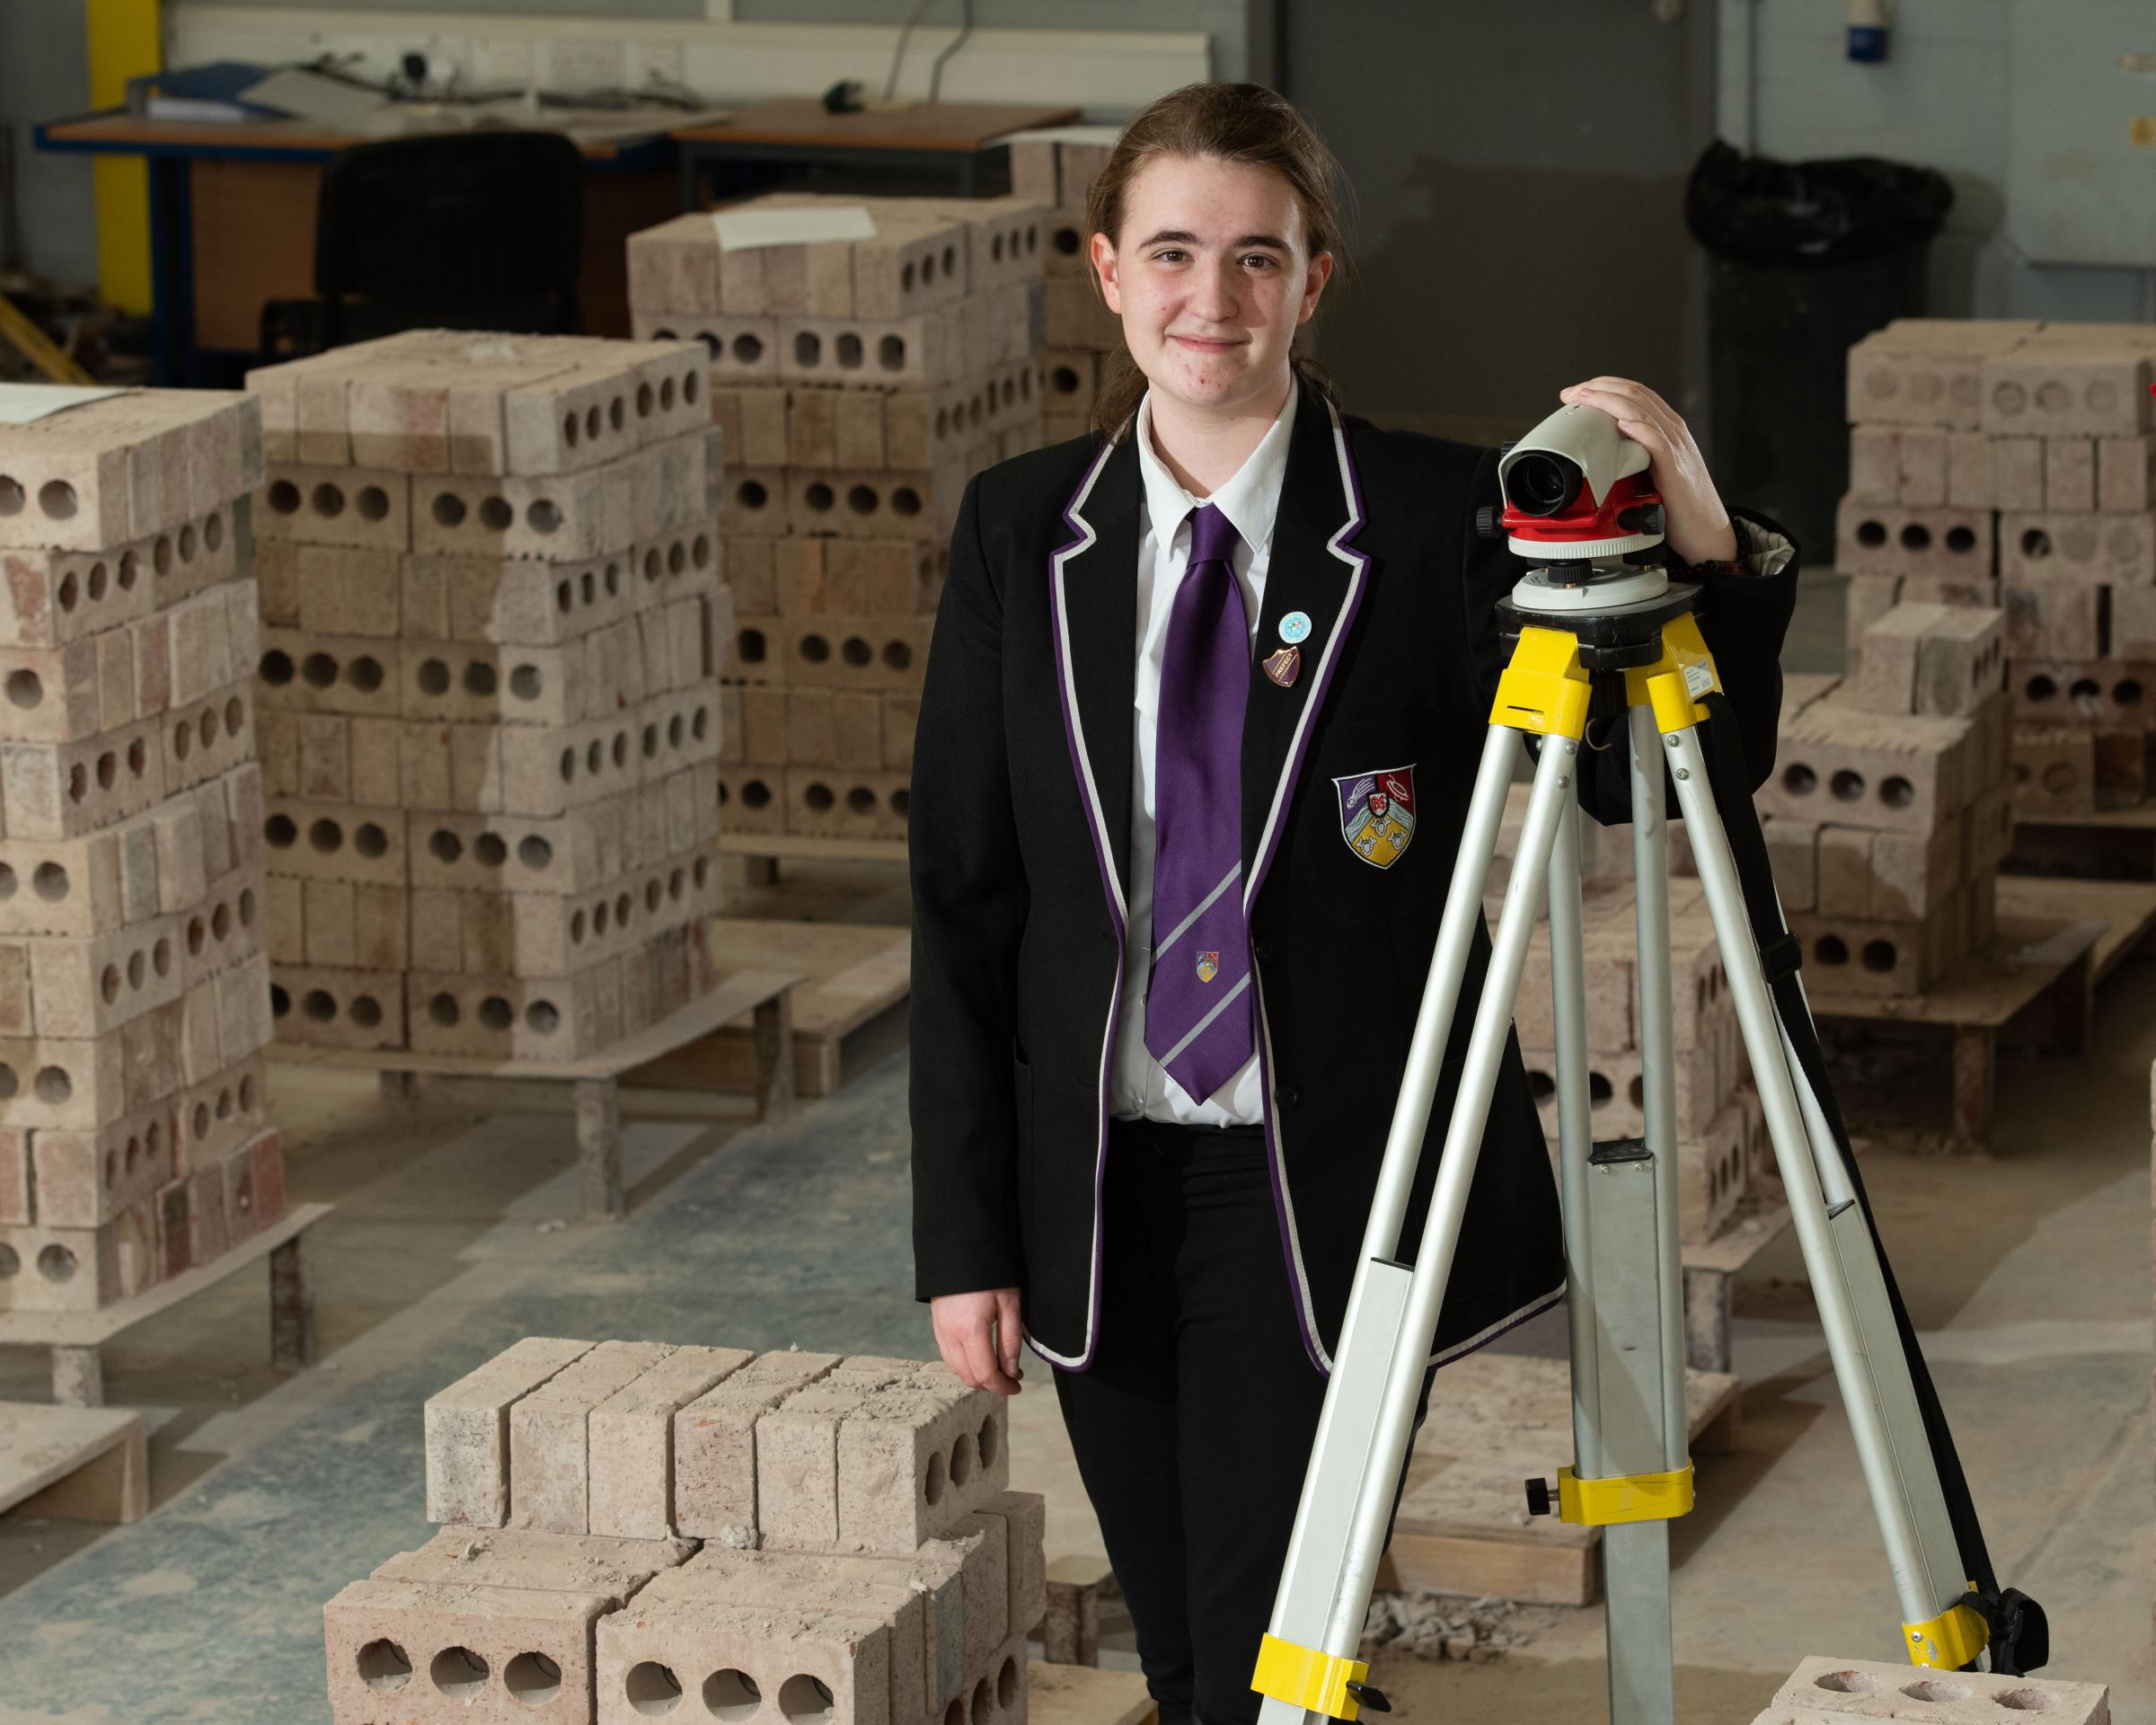 Barrhead pupil puts foundations in place for career path